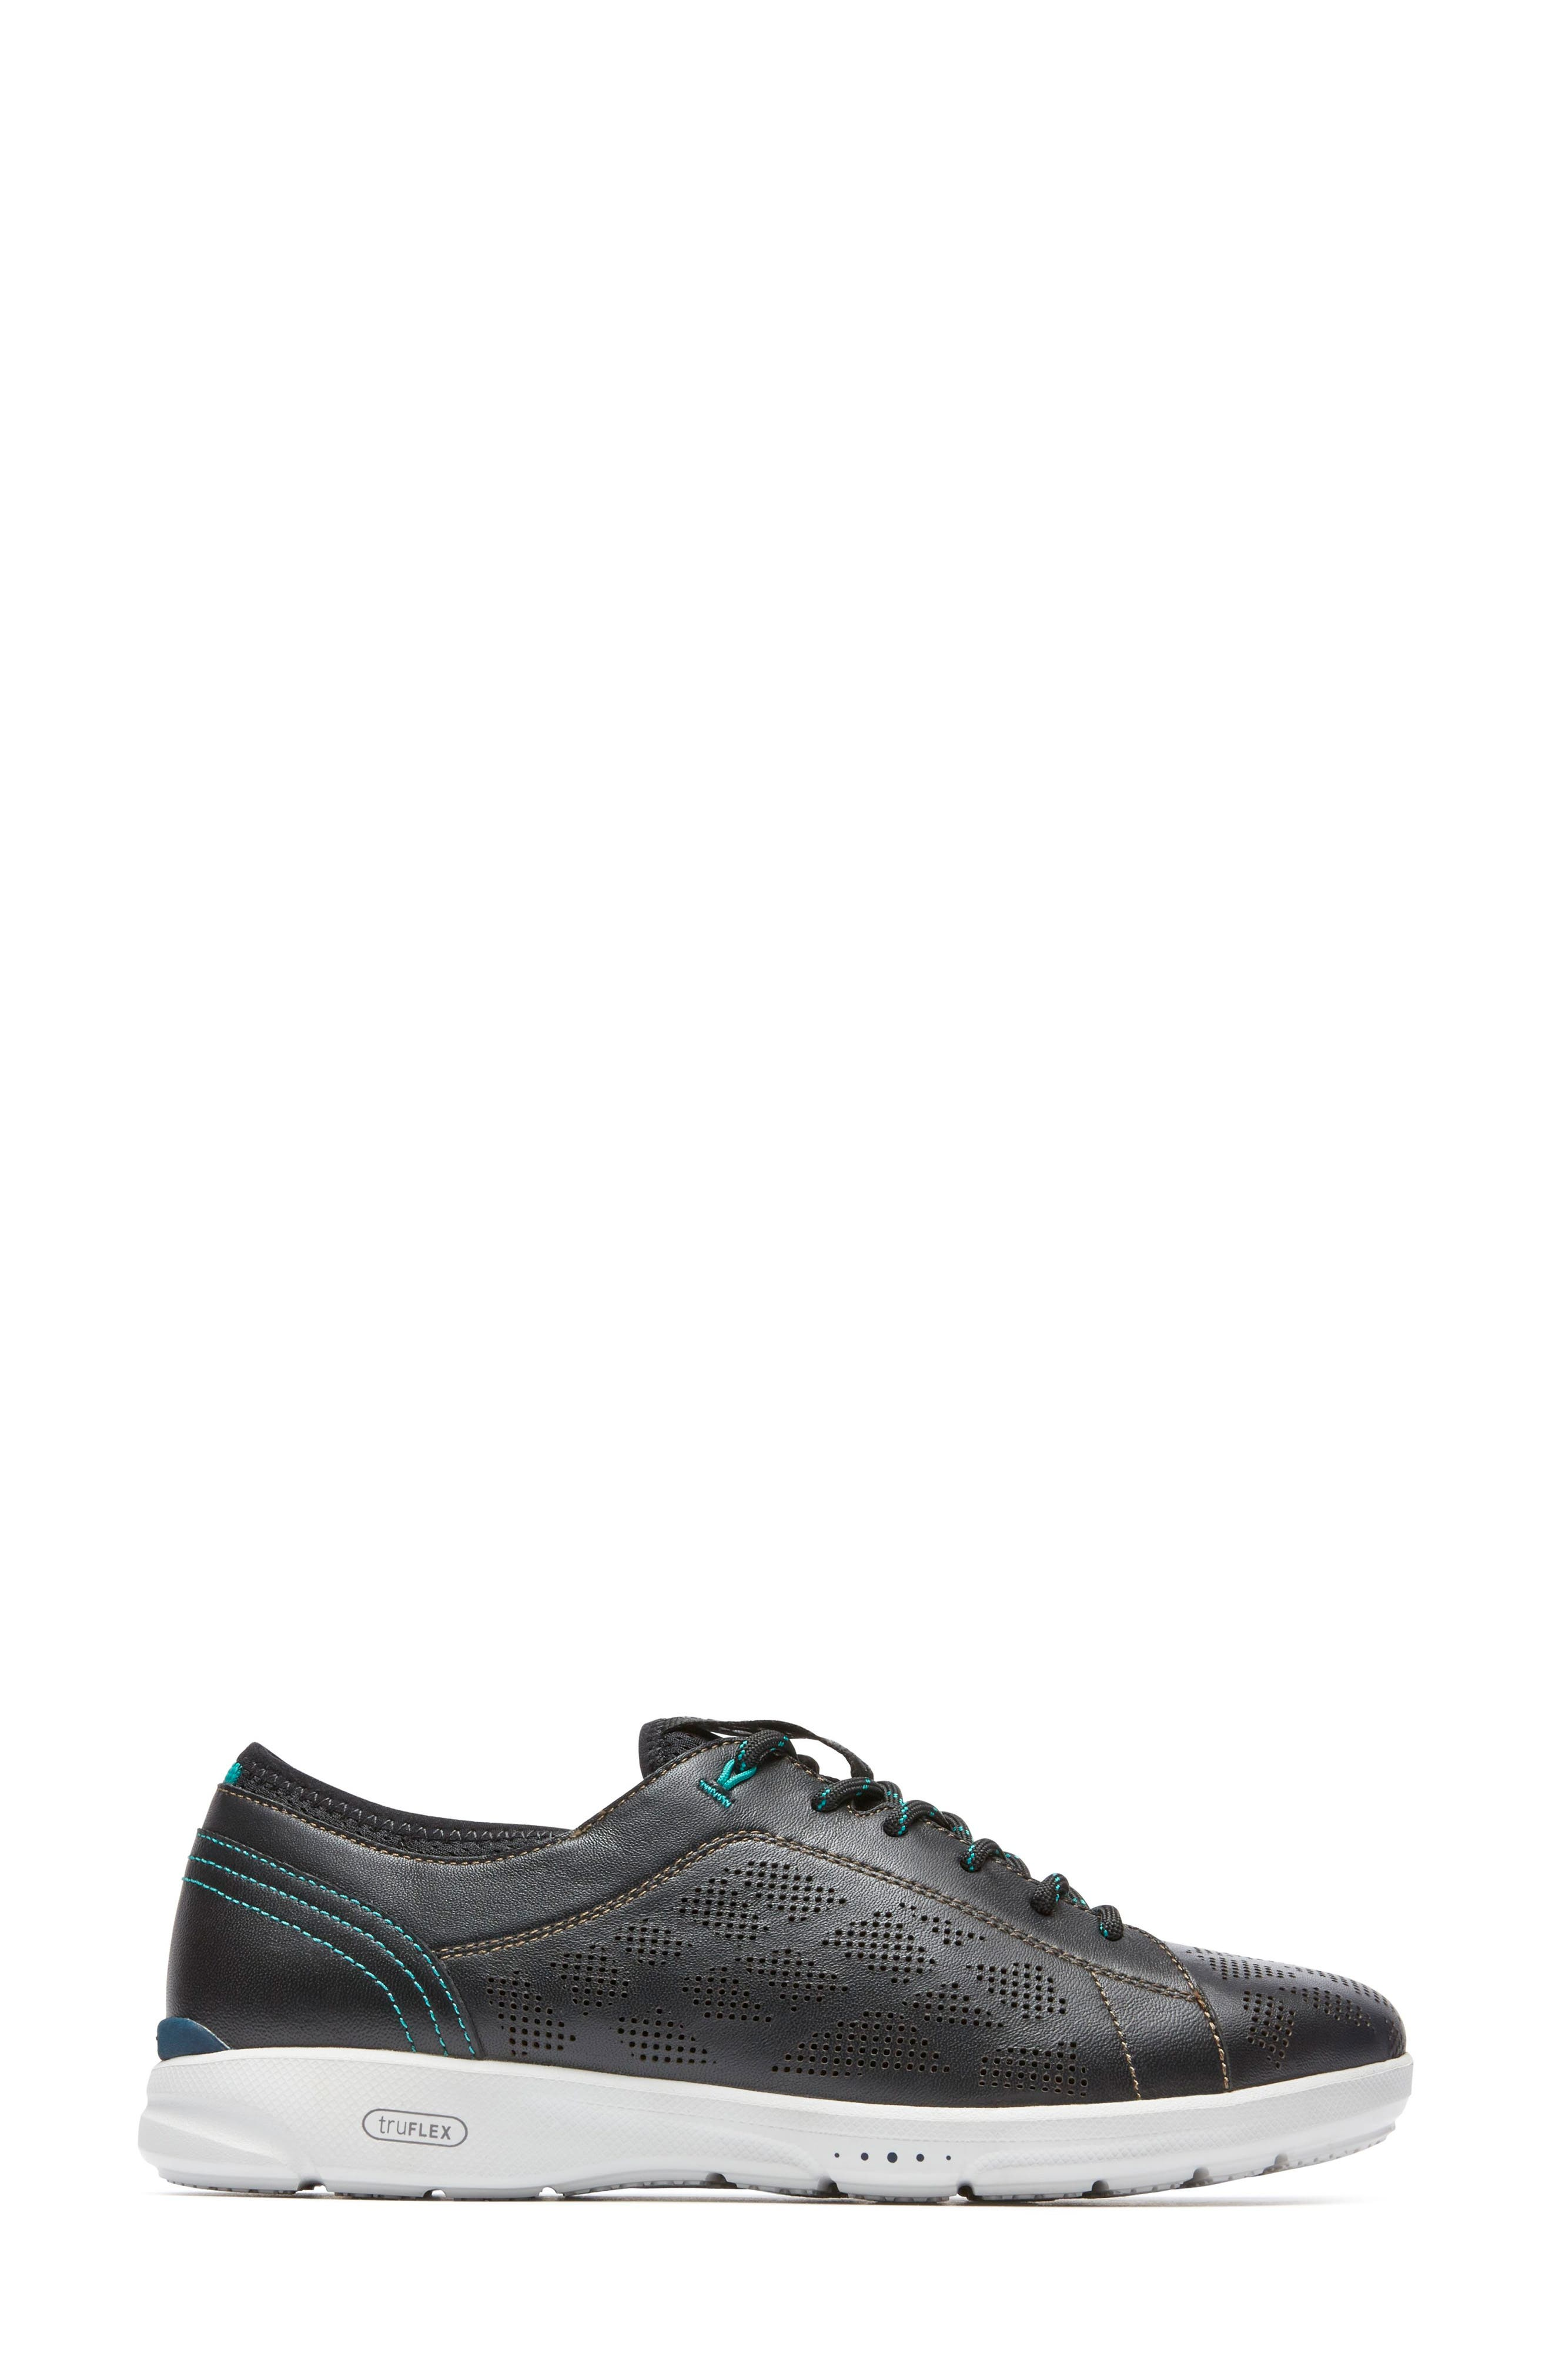 truFLEX Perforated Sneaker,                             Alternate thumbnail 3, color,                             BLACK LEATHER